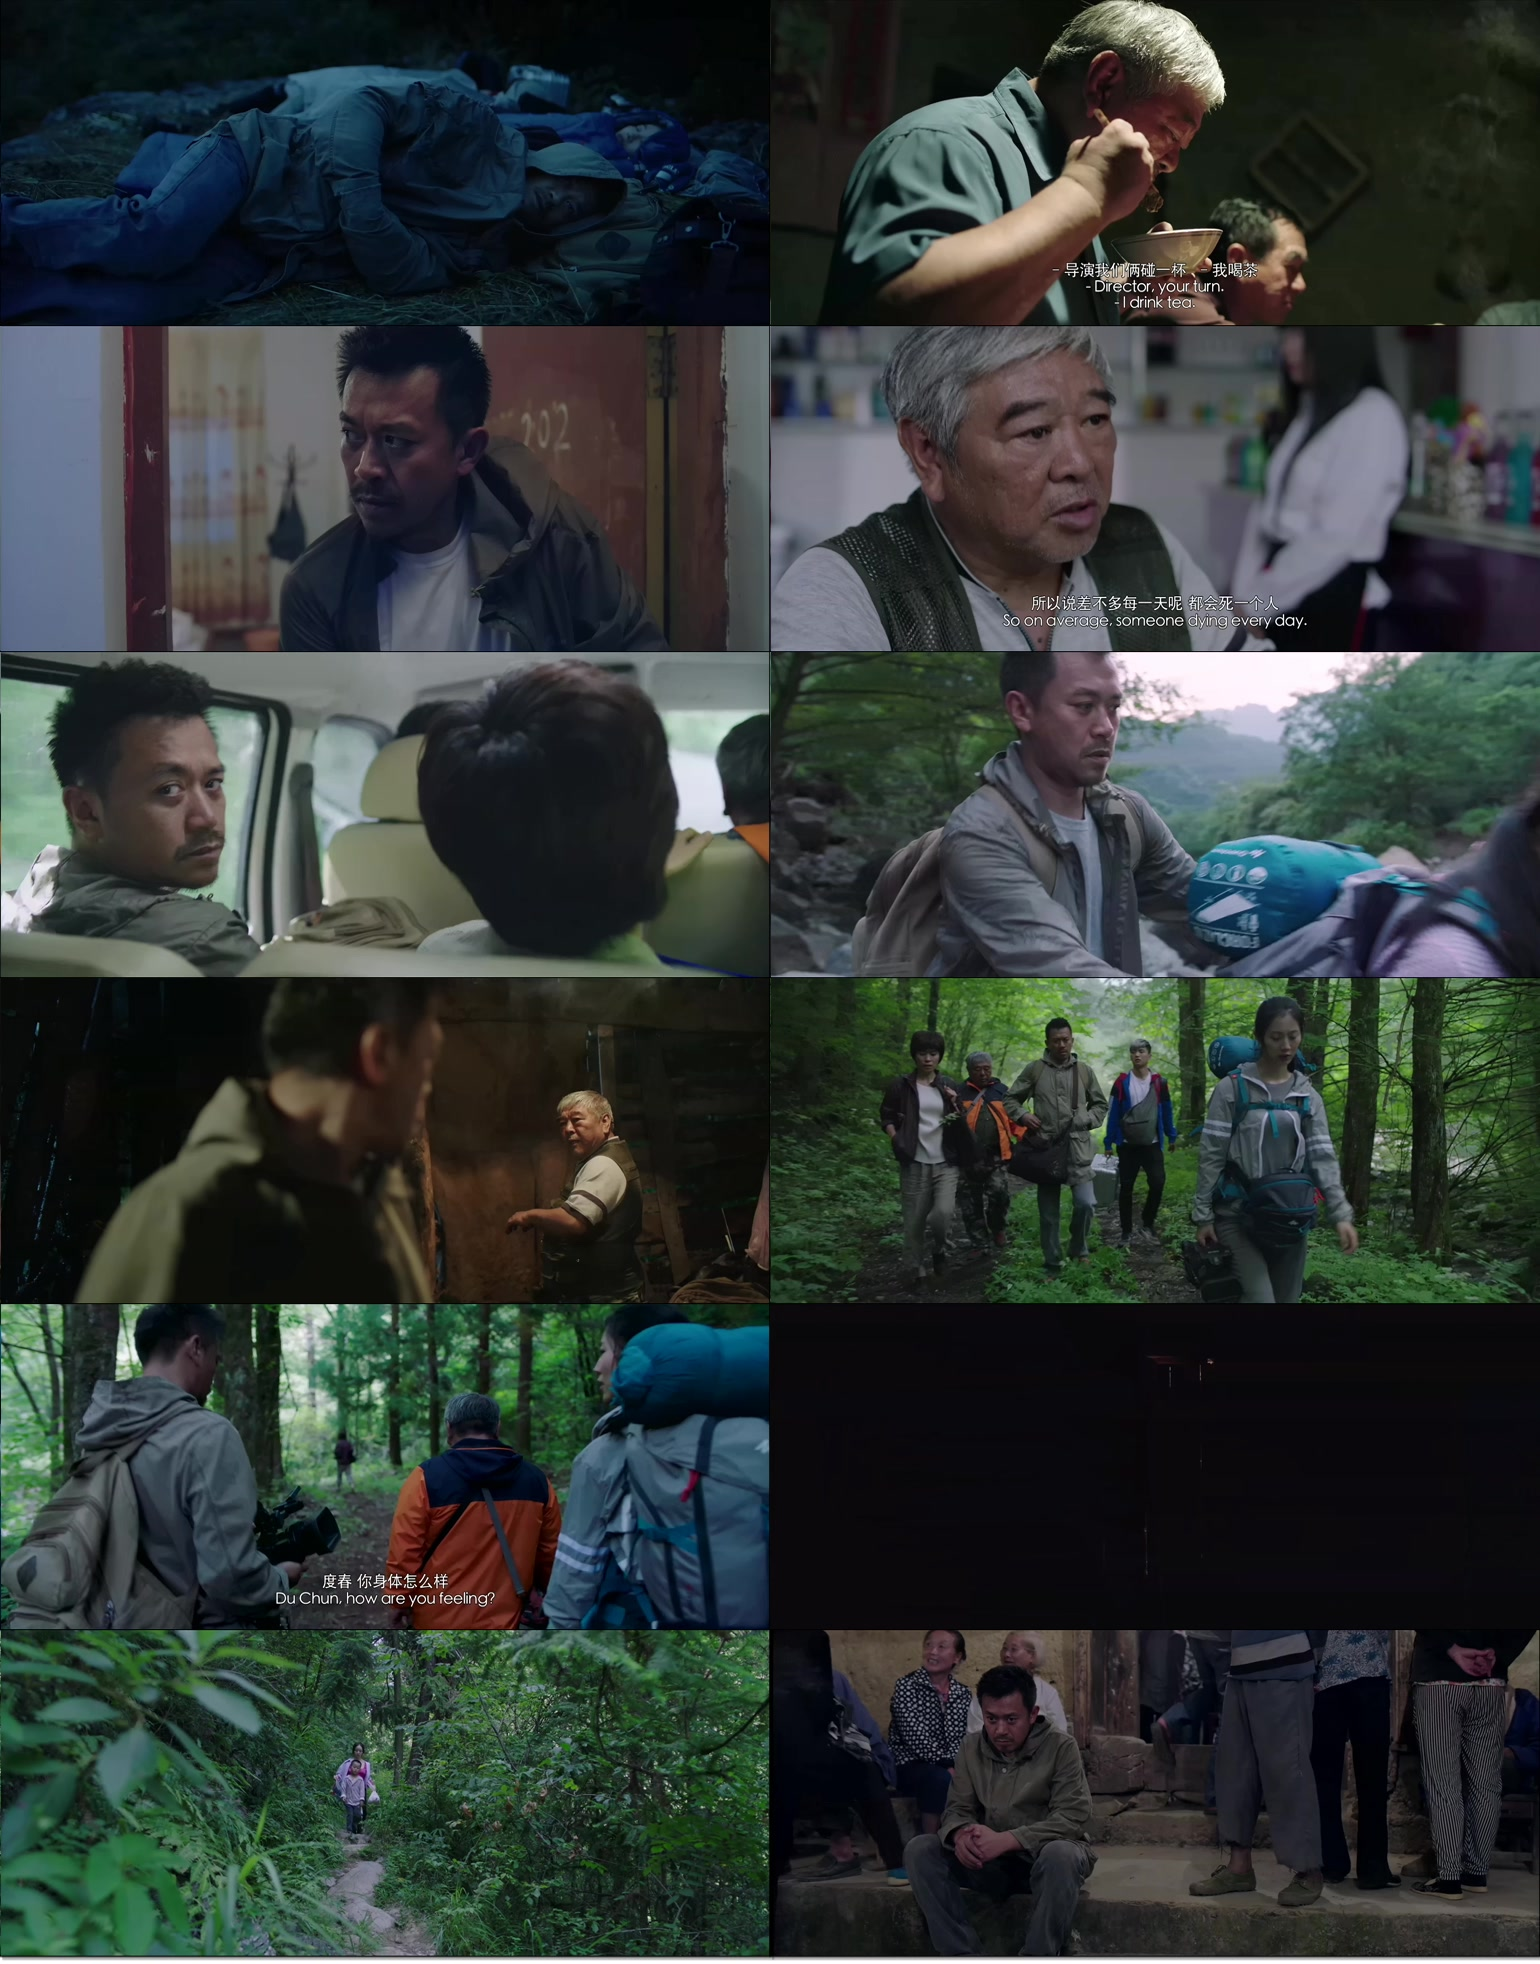 The.Moment.of.Pluto.2018.1080p.WEB-DL.H264.AAC2.0-FEWAT.mkv